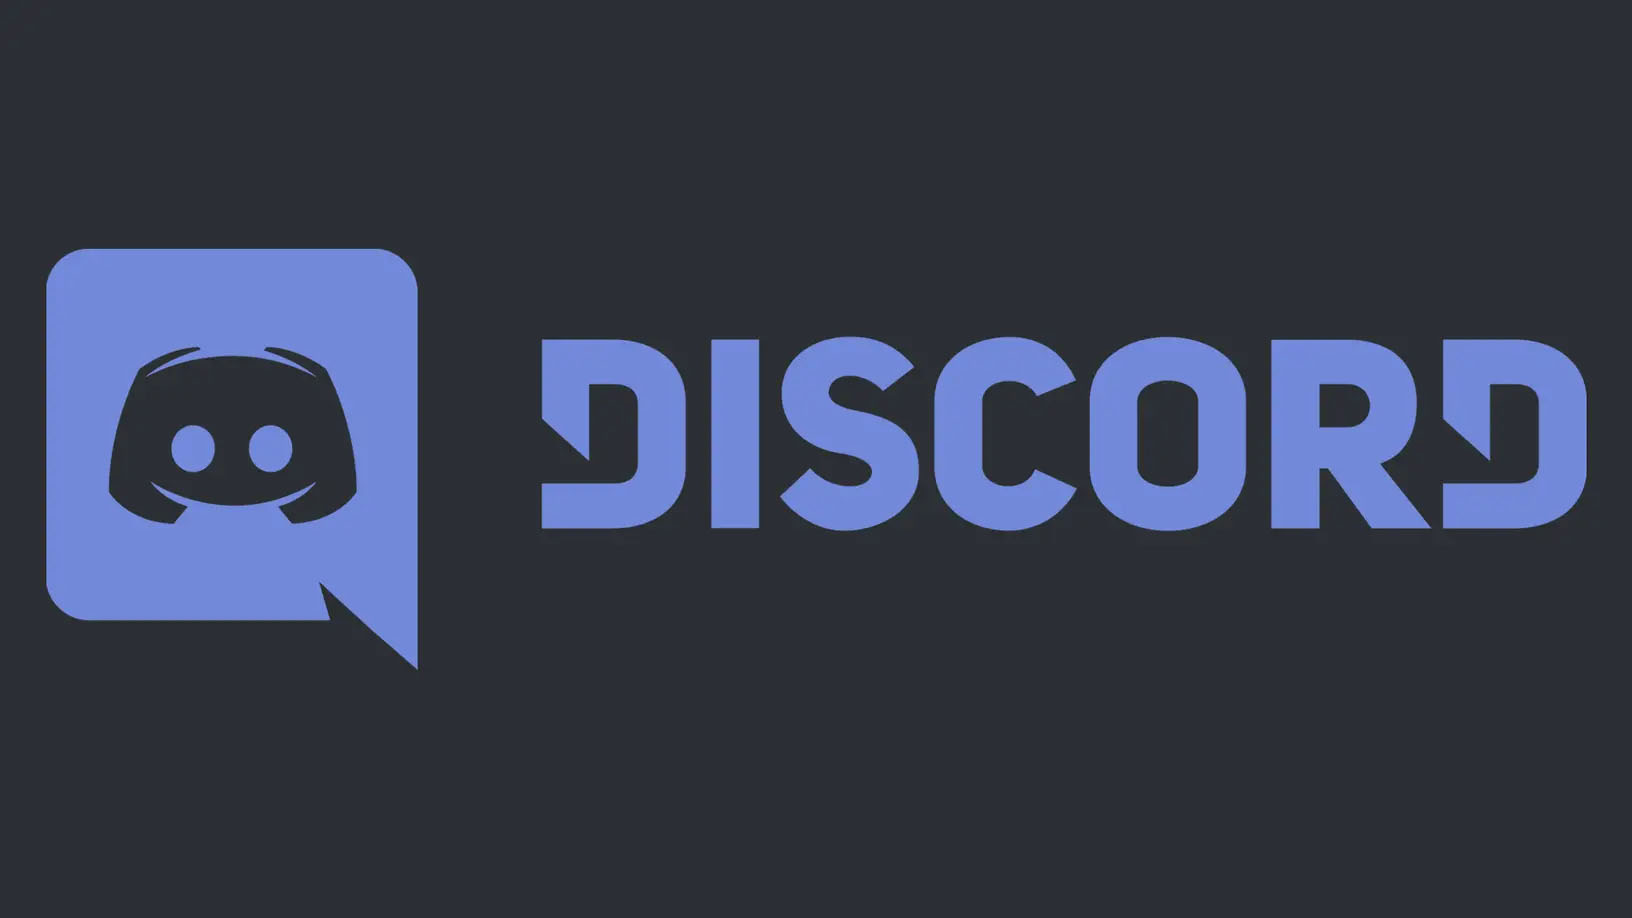 Sony Announces Discord Investment and Partnership